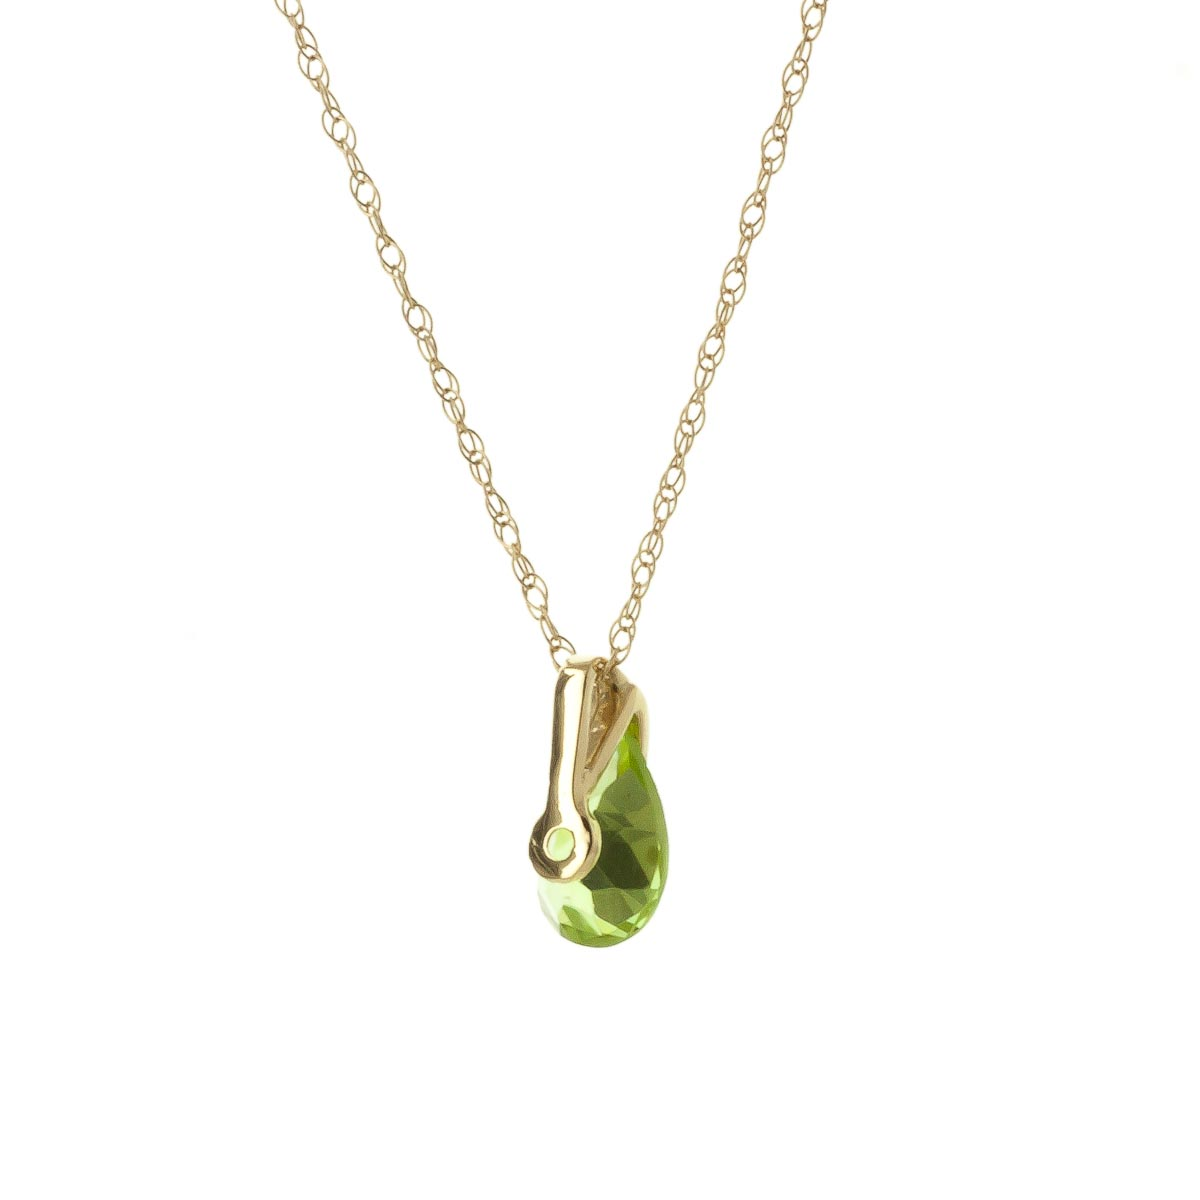 Peridot Pear Drop Pendant Necklace 0.68 ct in 9ct Gold